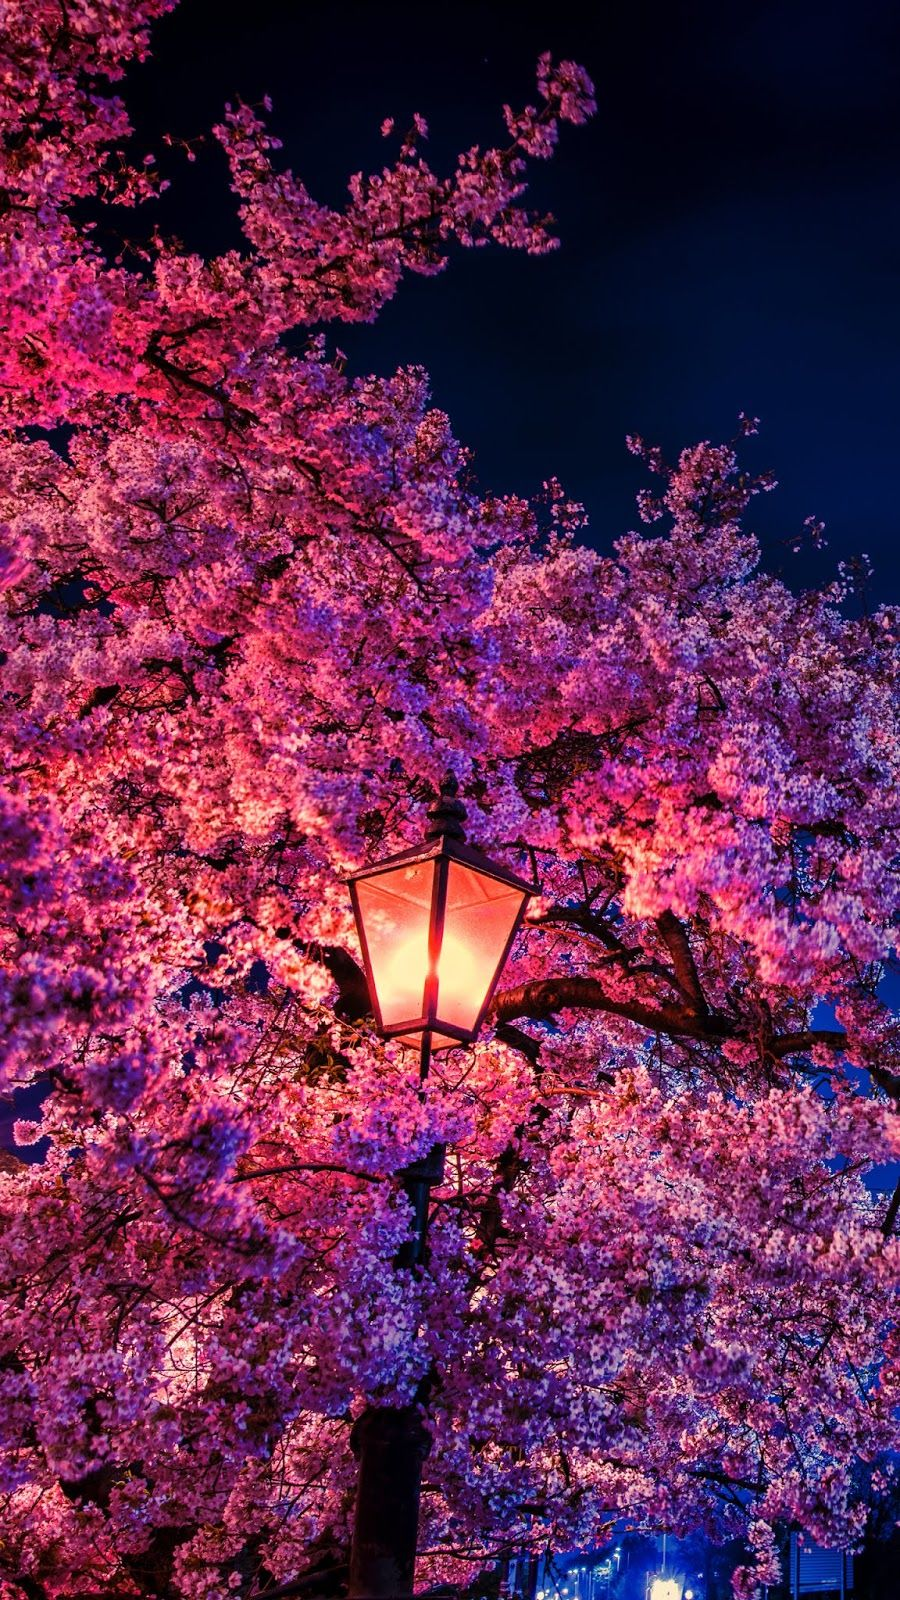 Aesthetic Cherry Blossom Night Wallpaper